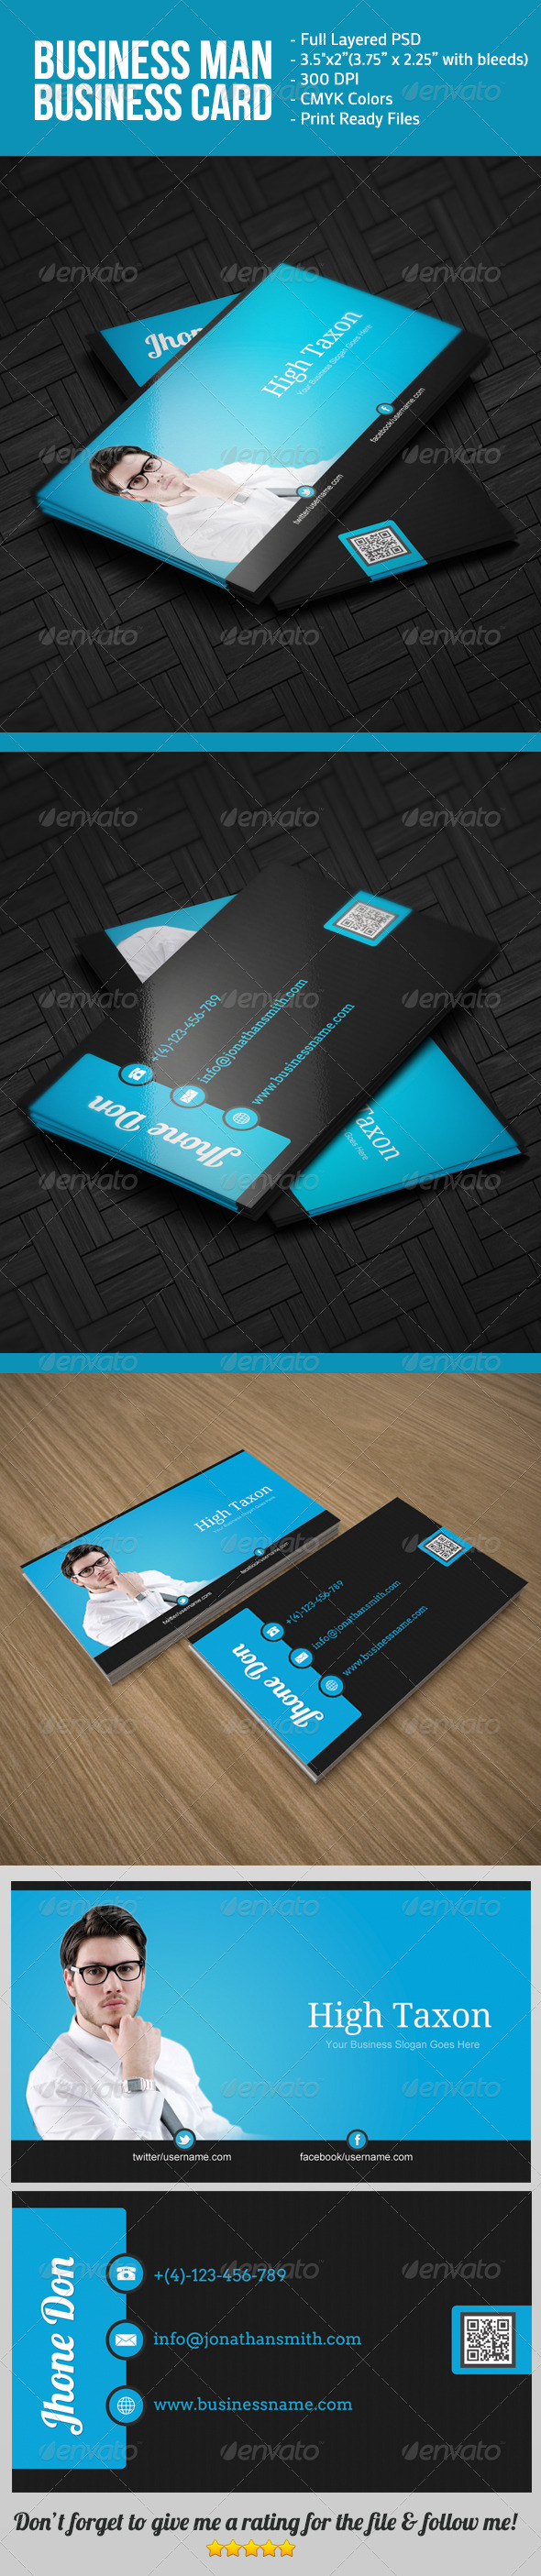 Business Man BusinessCard - Corporate Business Cards